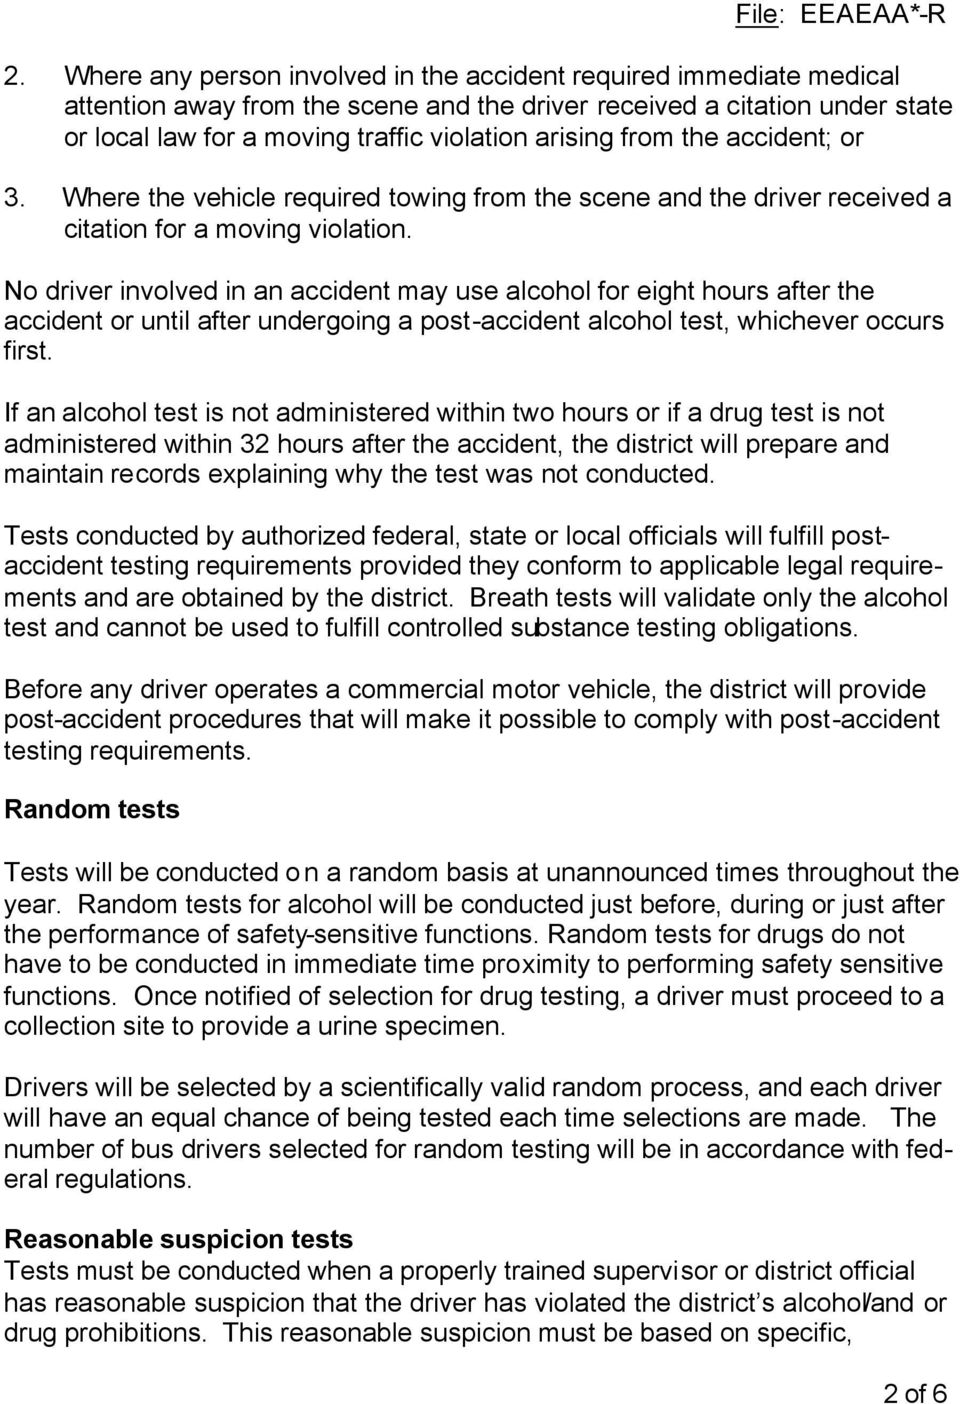 No driver involved in an accident may use alcohol for eight hours after the accident or until after undergoing a post-accident alcohol test, whichever occurs first.